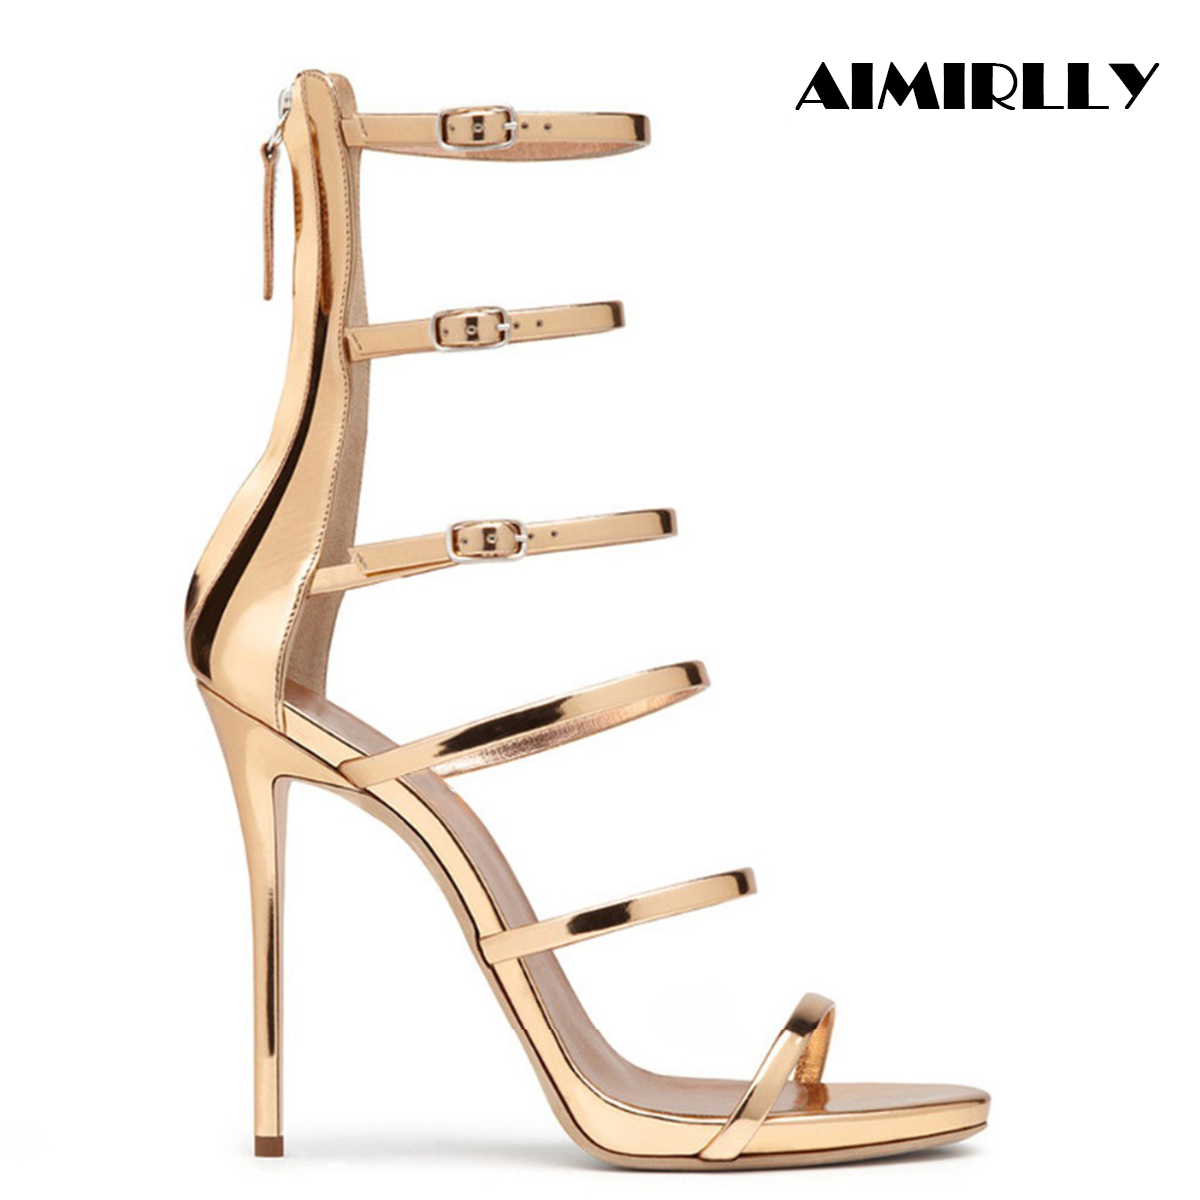 Aimirlly Women Shoes High Heel Stiletto Cover Heel Back Zipper Open Toe Rome style Sandals Strappy